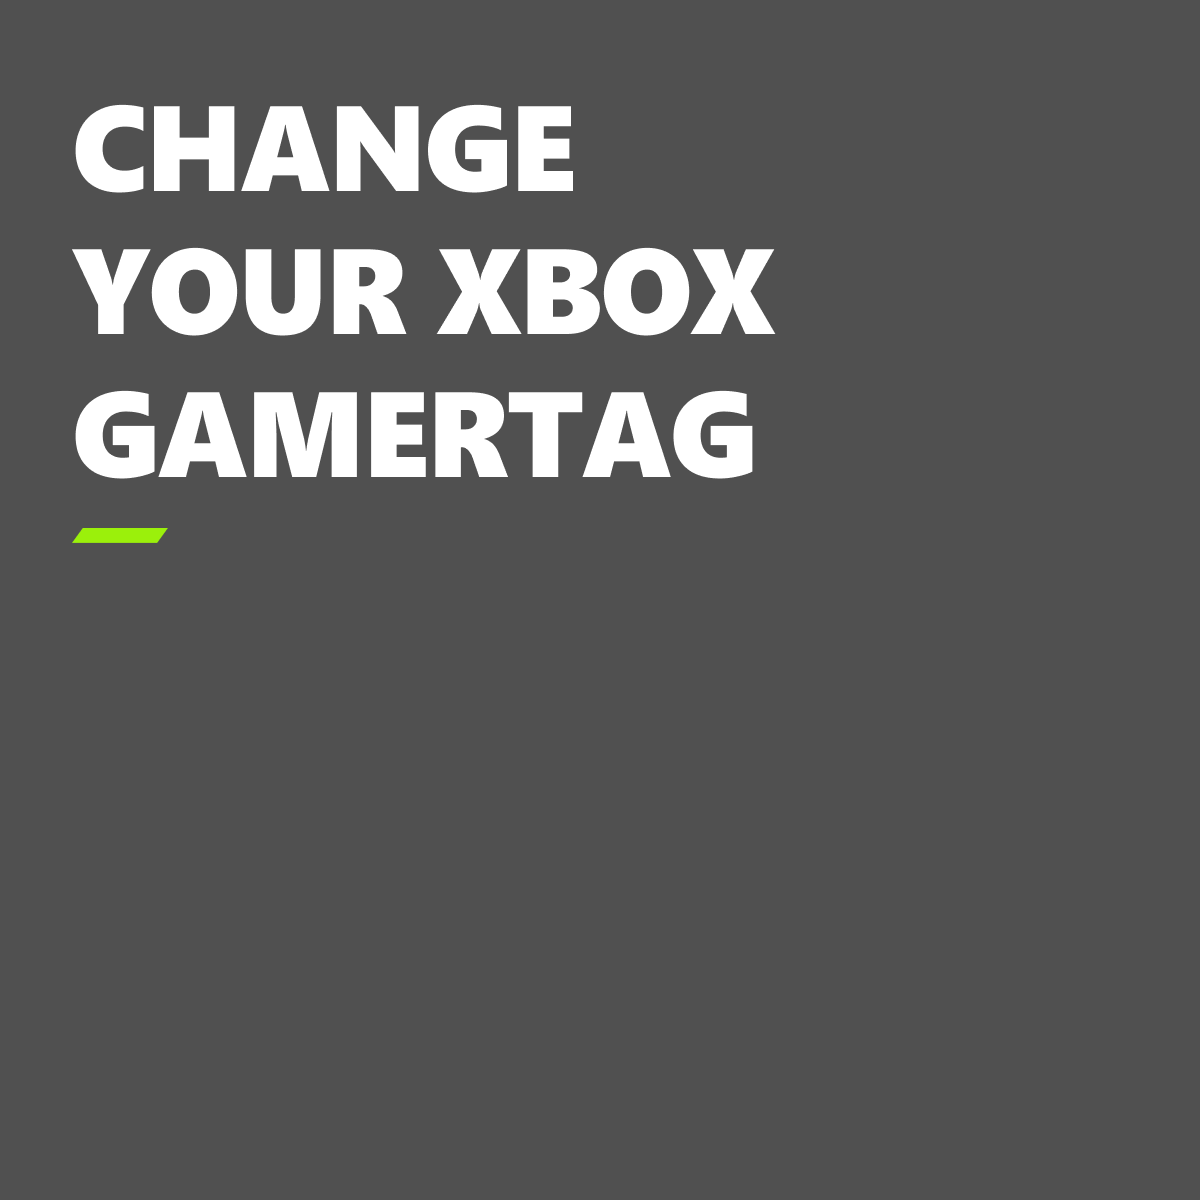 """When you snagged a """"Baby Yoda"""" gamertag name during Season 1 but want to change it after this season (❗ no spoilers ❗), this is the way."""